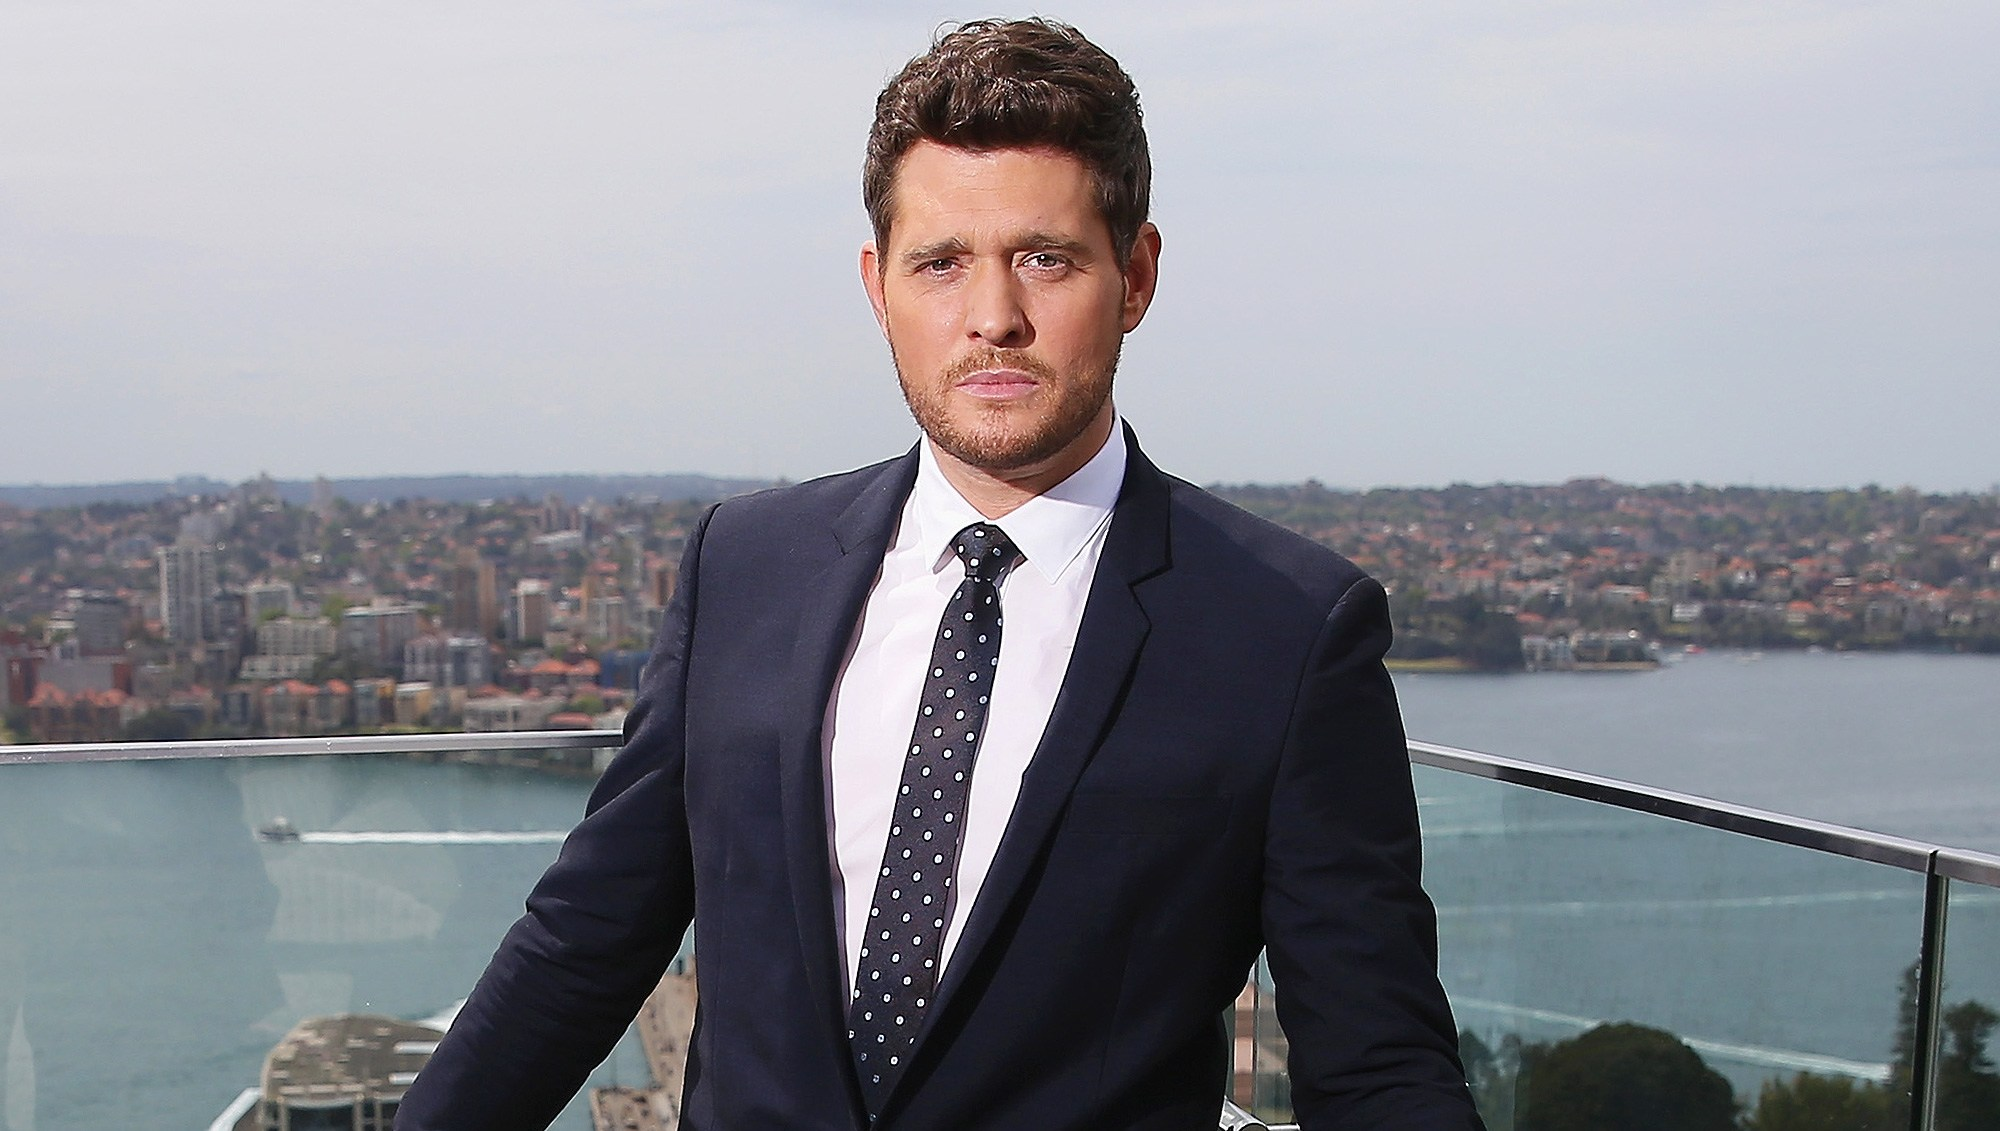 Michael Buble, Retiring, Music, Son, Cancer